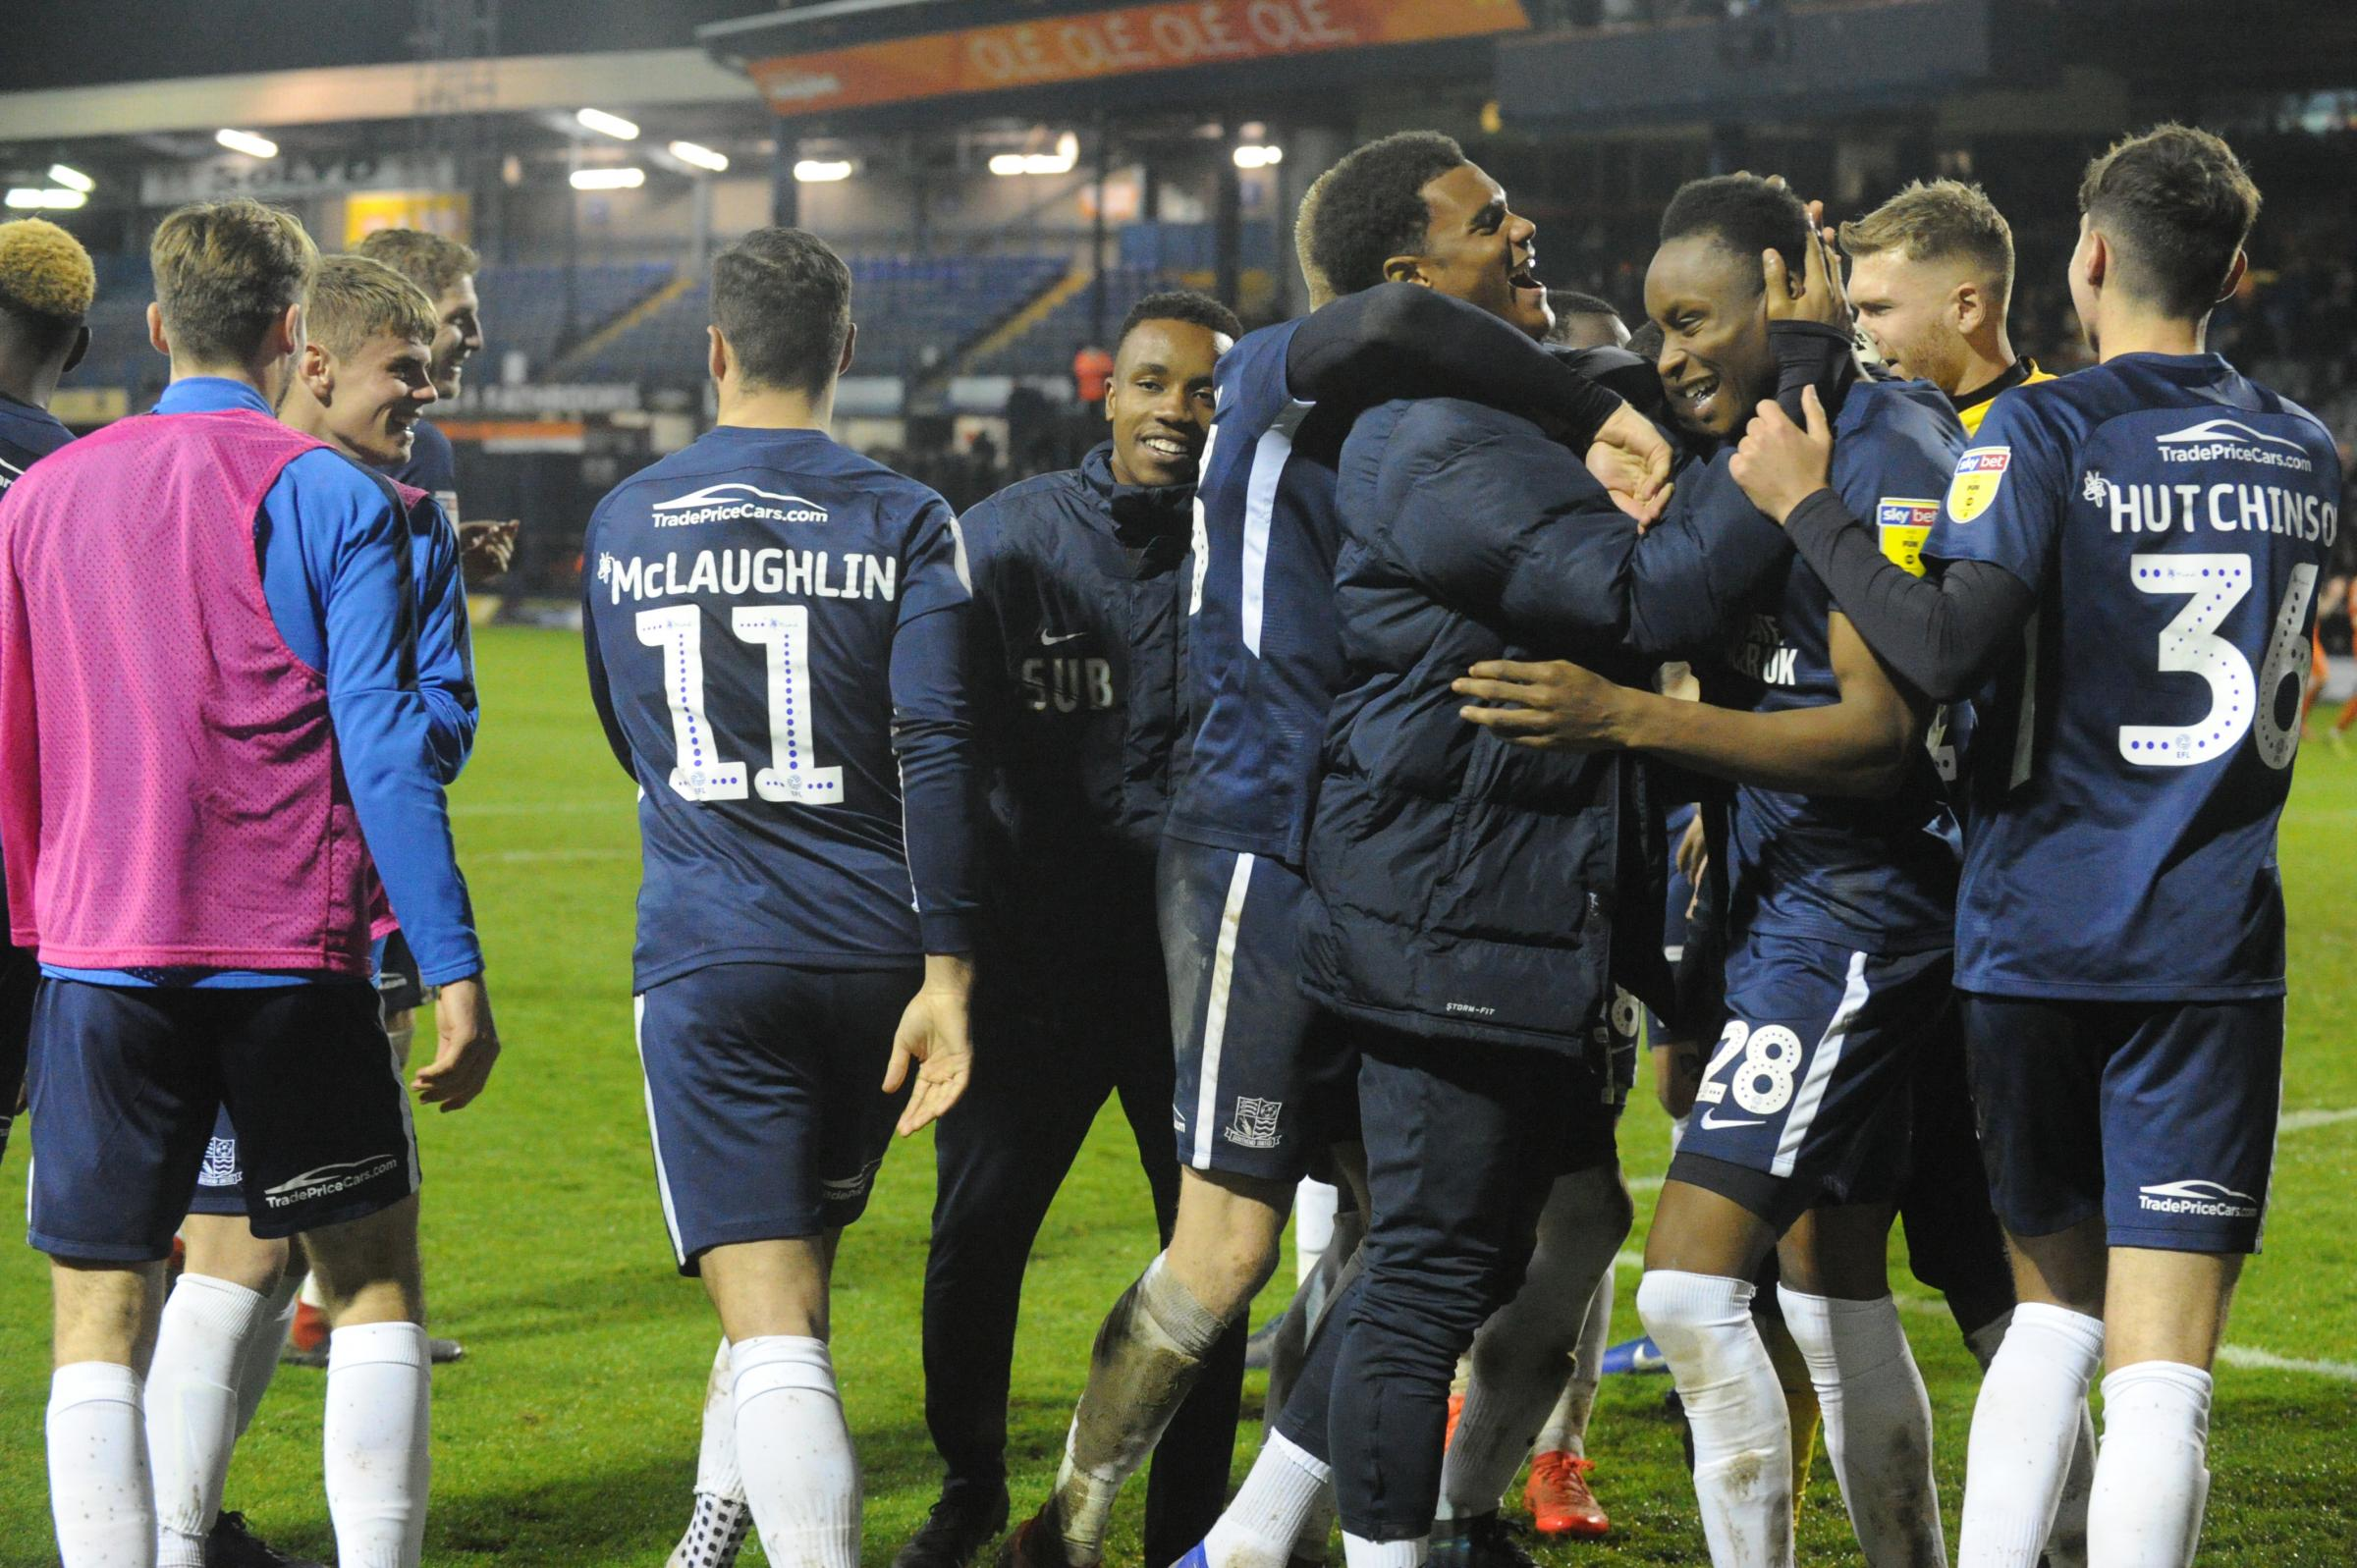 Showing their joy - Southend United celebrate their win at Luton Town